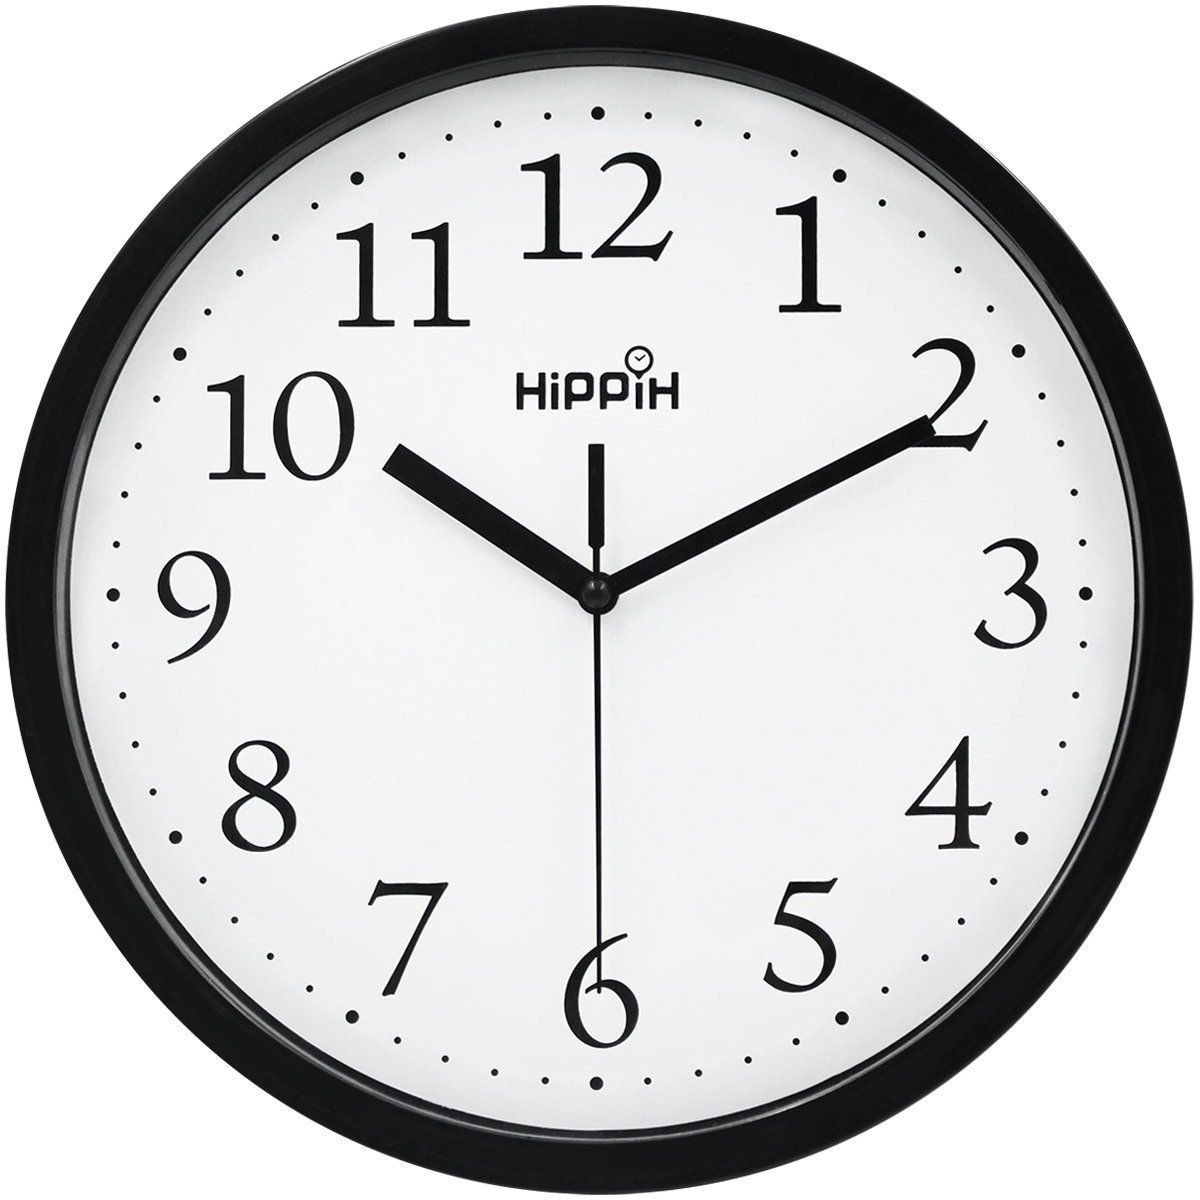 Hippih Black Wall Clock Silent Non Ticking Quality Quartz 10 Inch Round Easy To Read For Home Office School Kitchen Clock Lavorist Black Wall Clock Wall Clock Silent Large Wall Clock